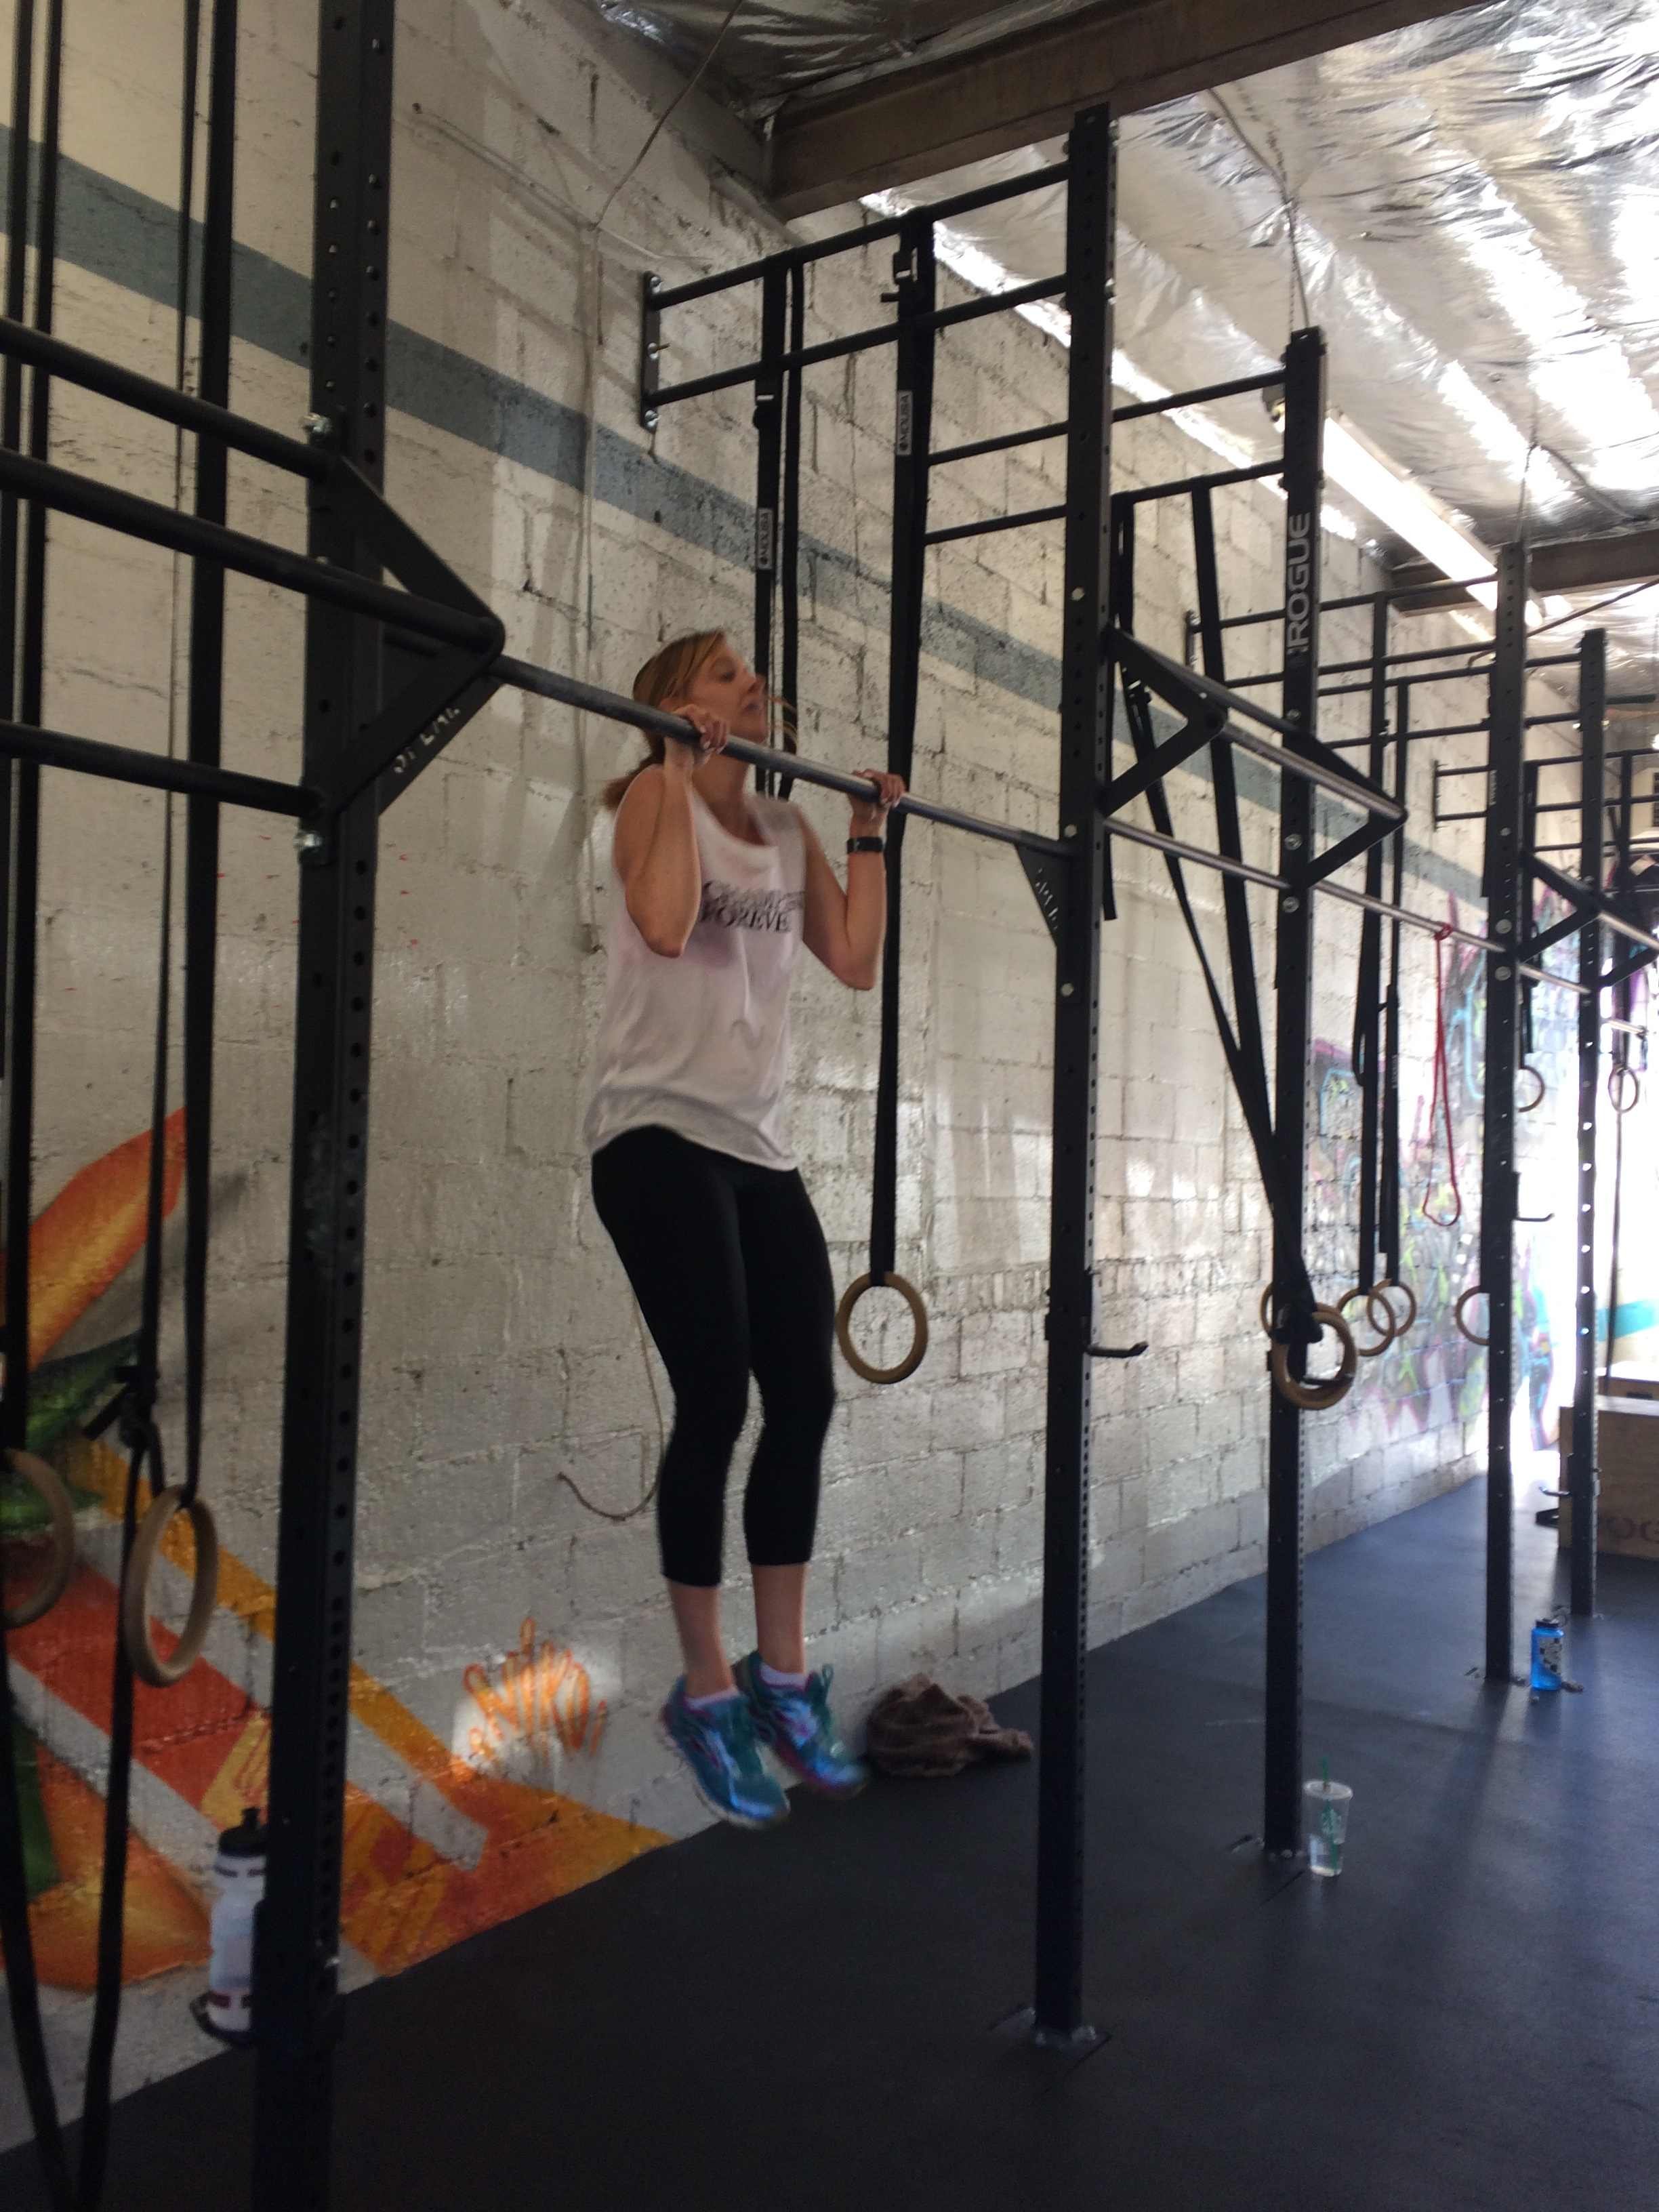 The No Band Pull Up club gained several new members last week. Shout outs to Jenna, Kristina, May, Beth, Jan and all the others that completed unbanded pull ups for the first time recently.